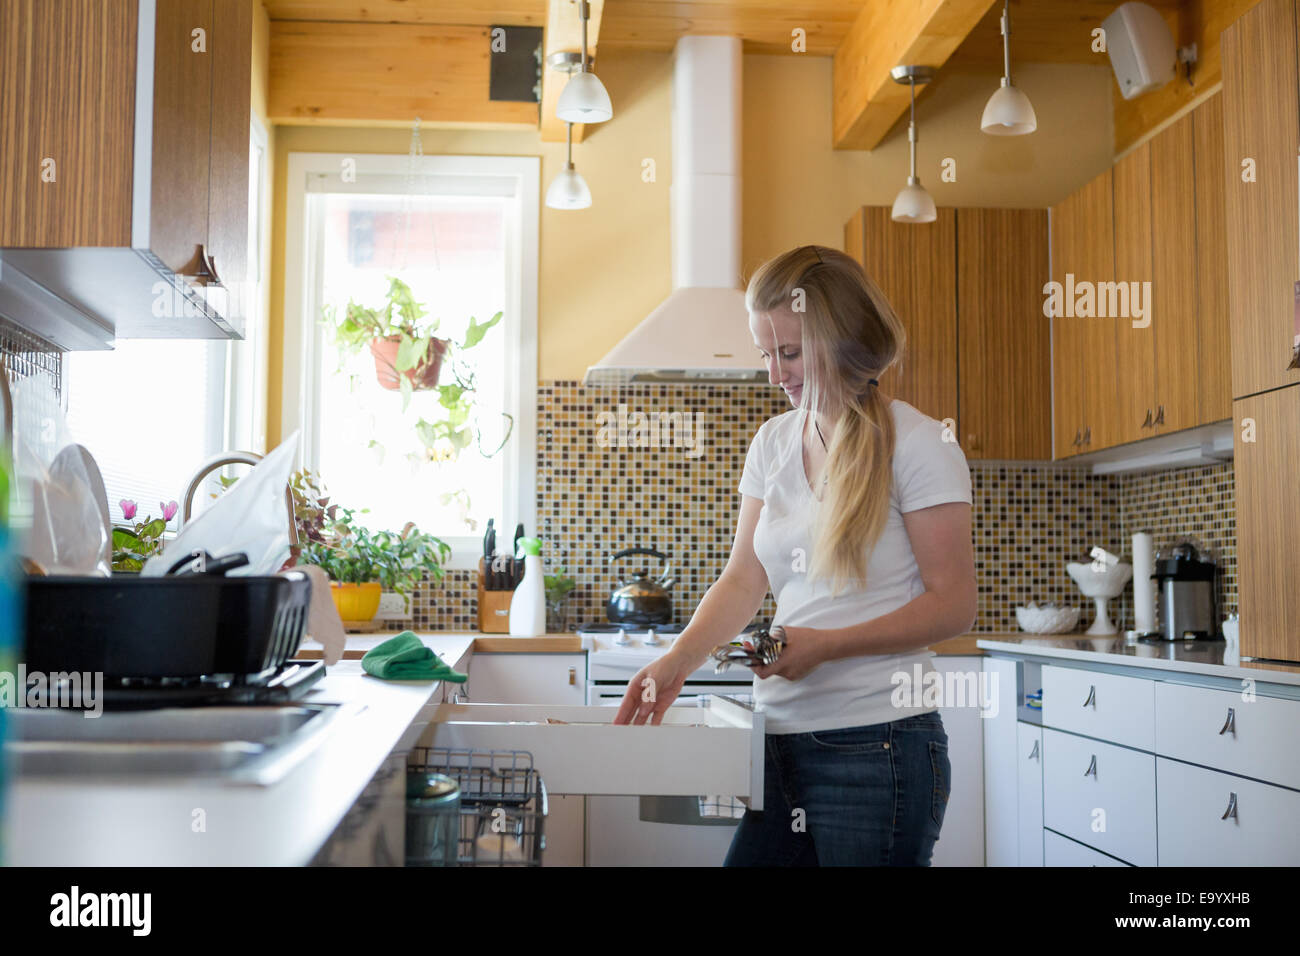 Young woman cleaning kitchen with green cleaning products - Stock Image